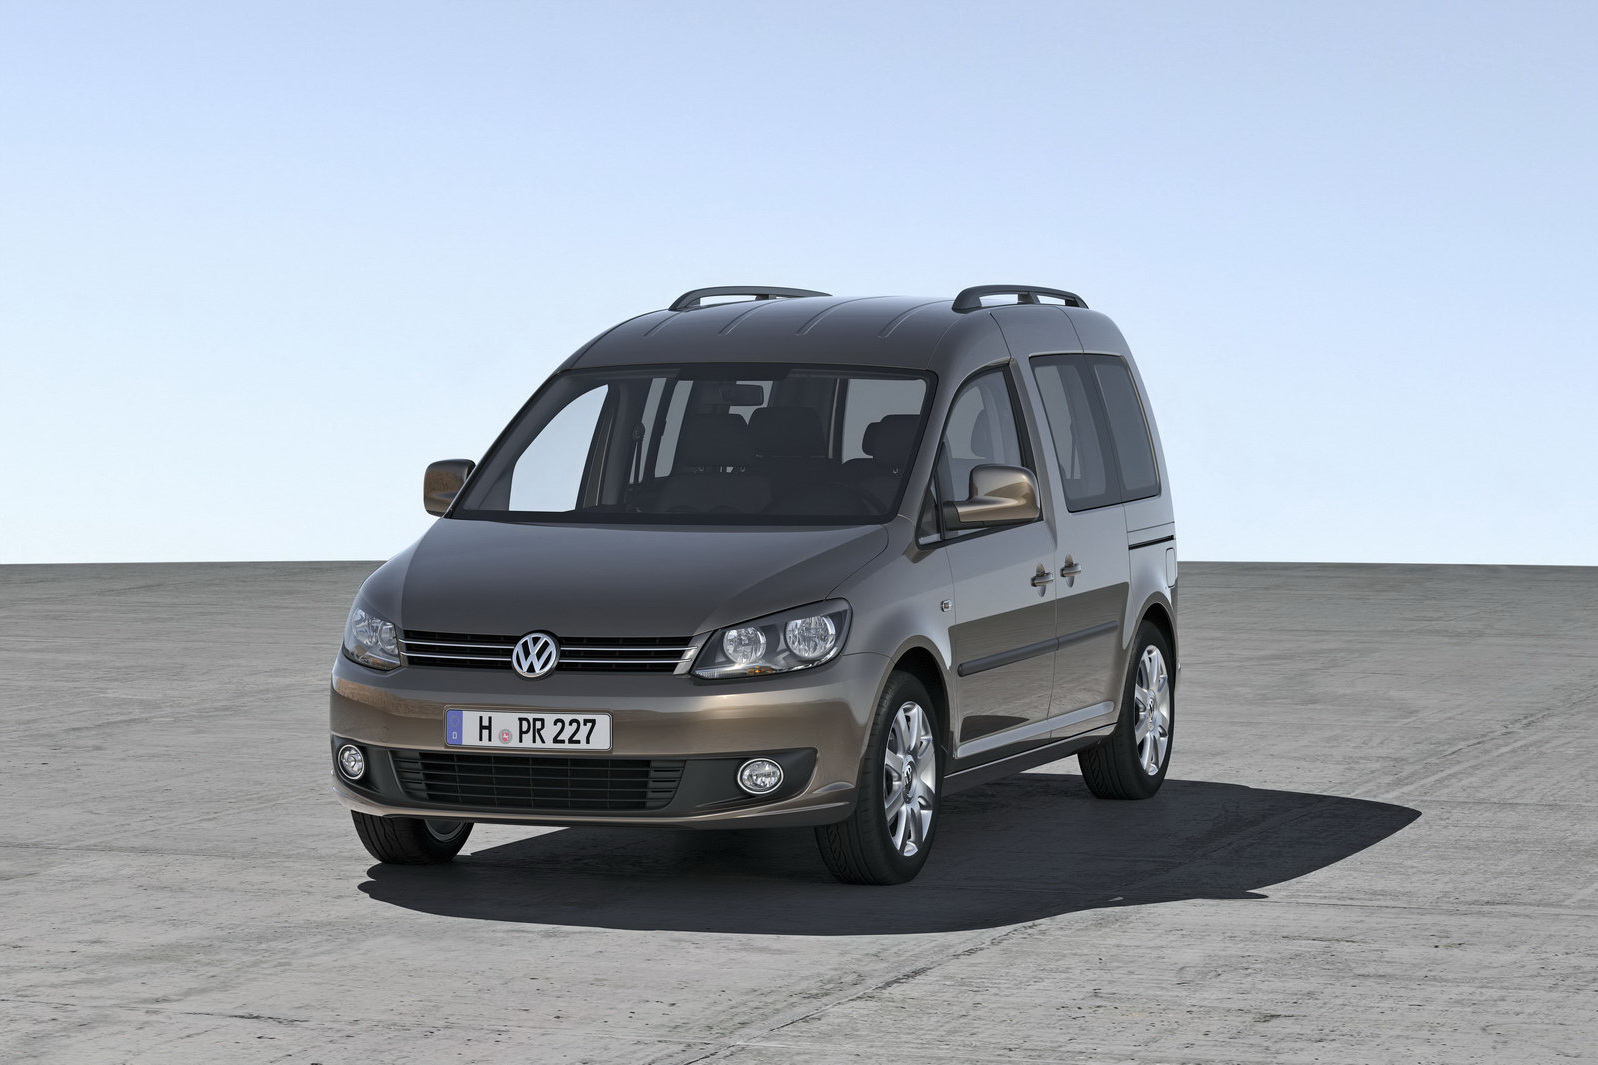 volkswagen caddy facelift 2010 volkswagen autopareri. Black Bedroom Furniture Sets. Home Design Ideas